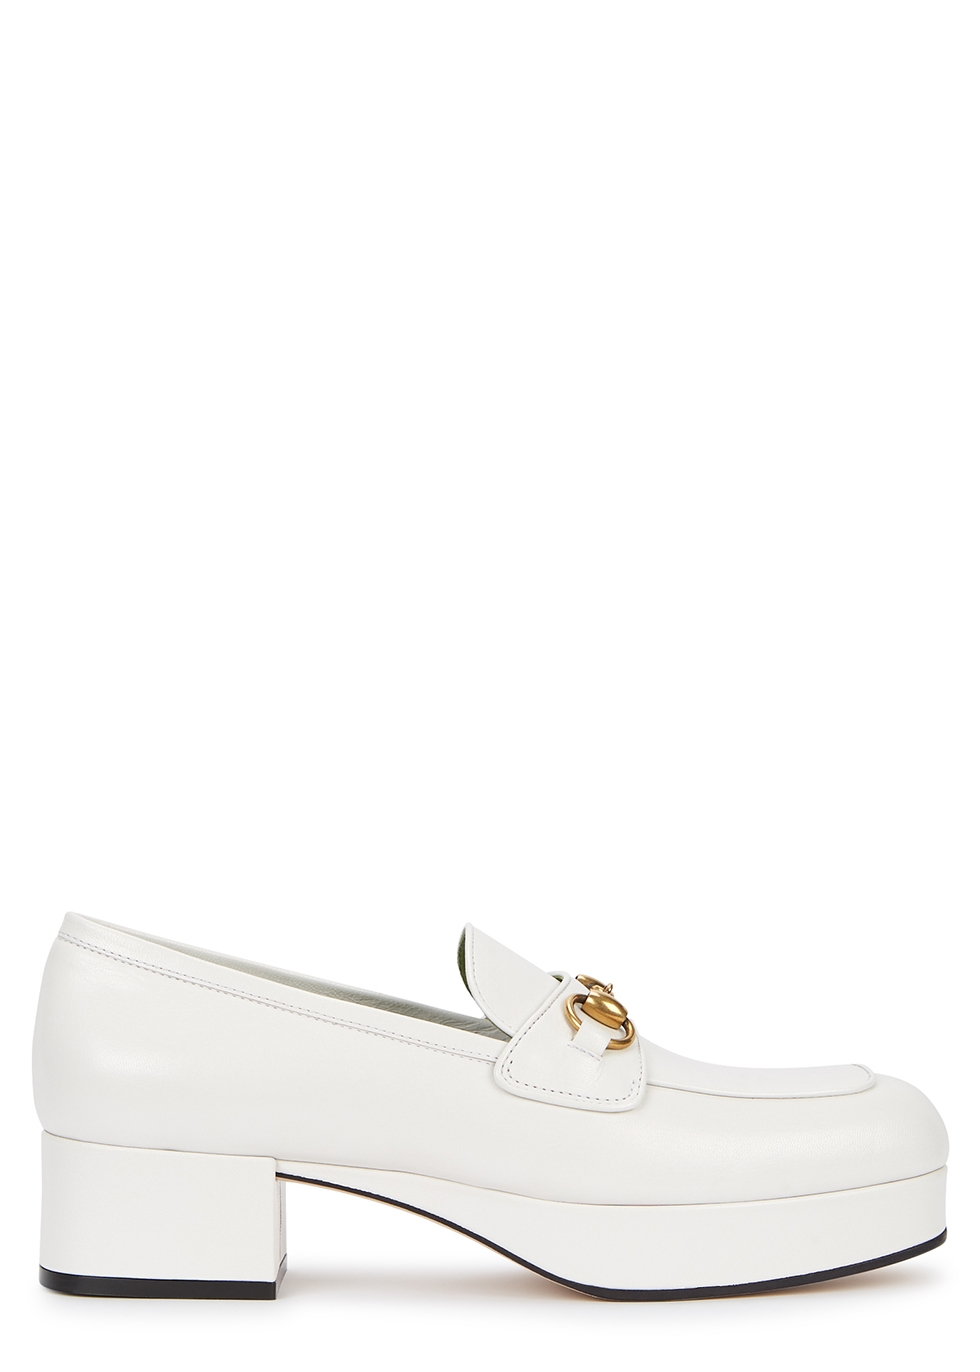 45 White Platform Leather Loafers by Gucci